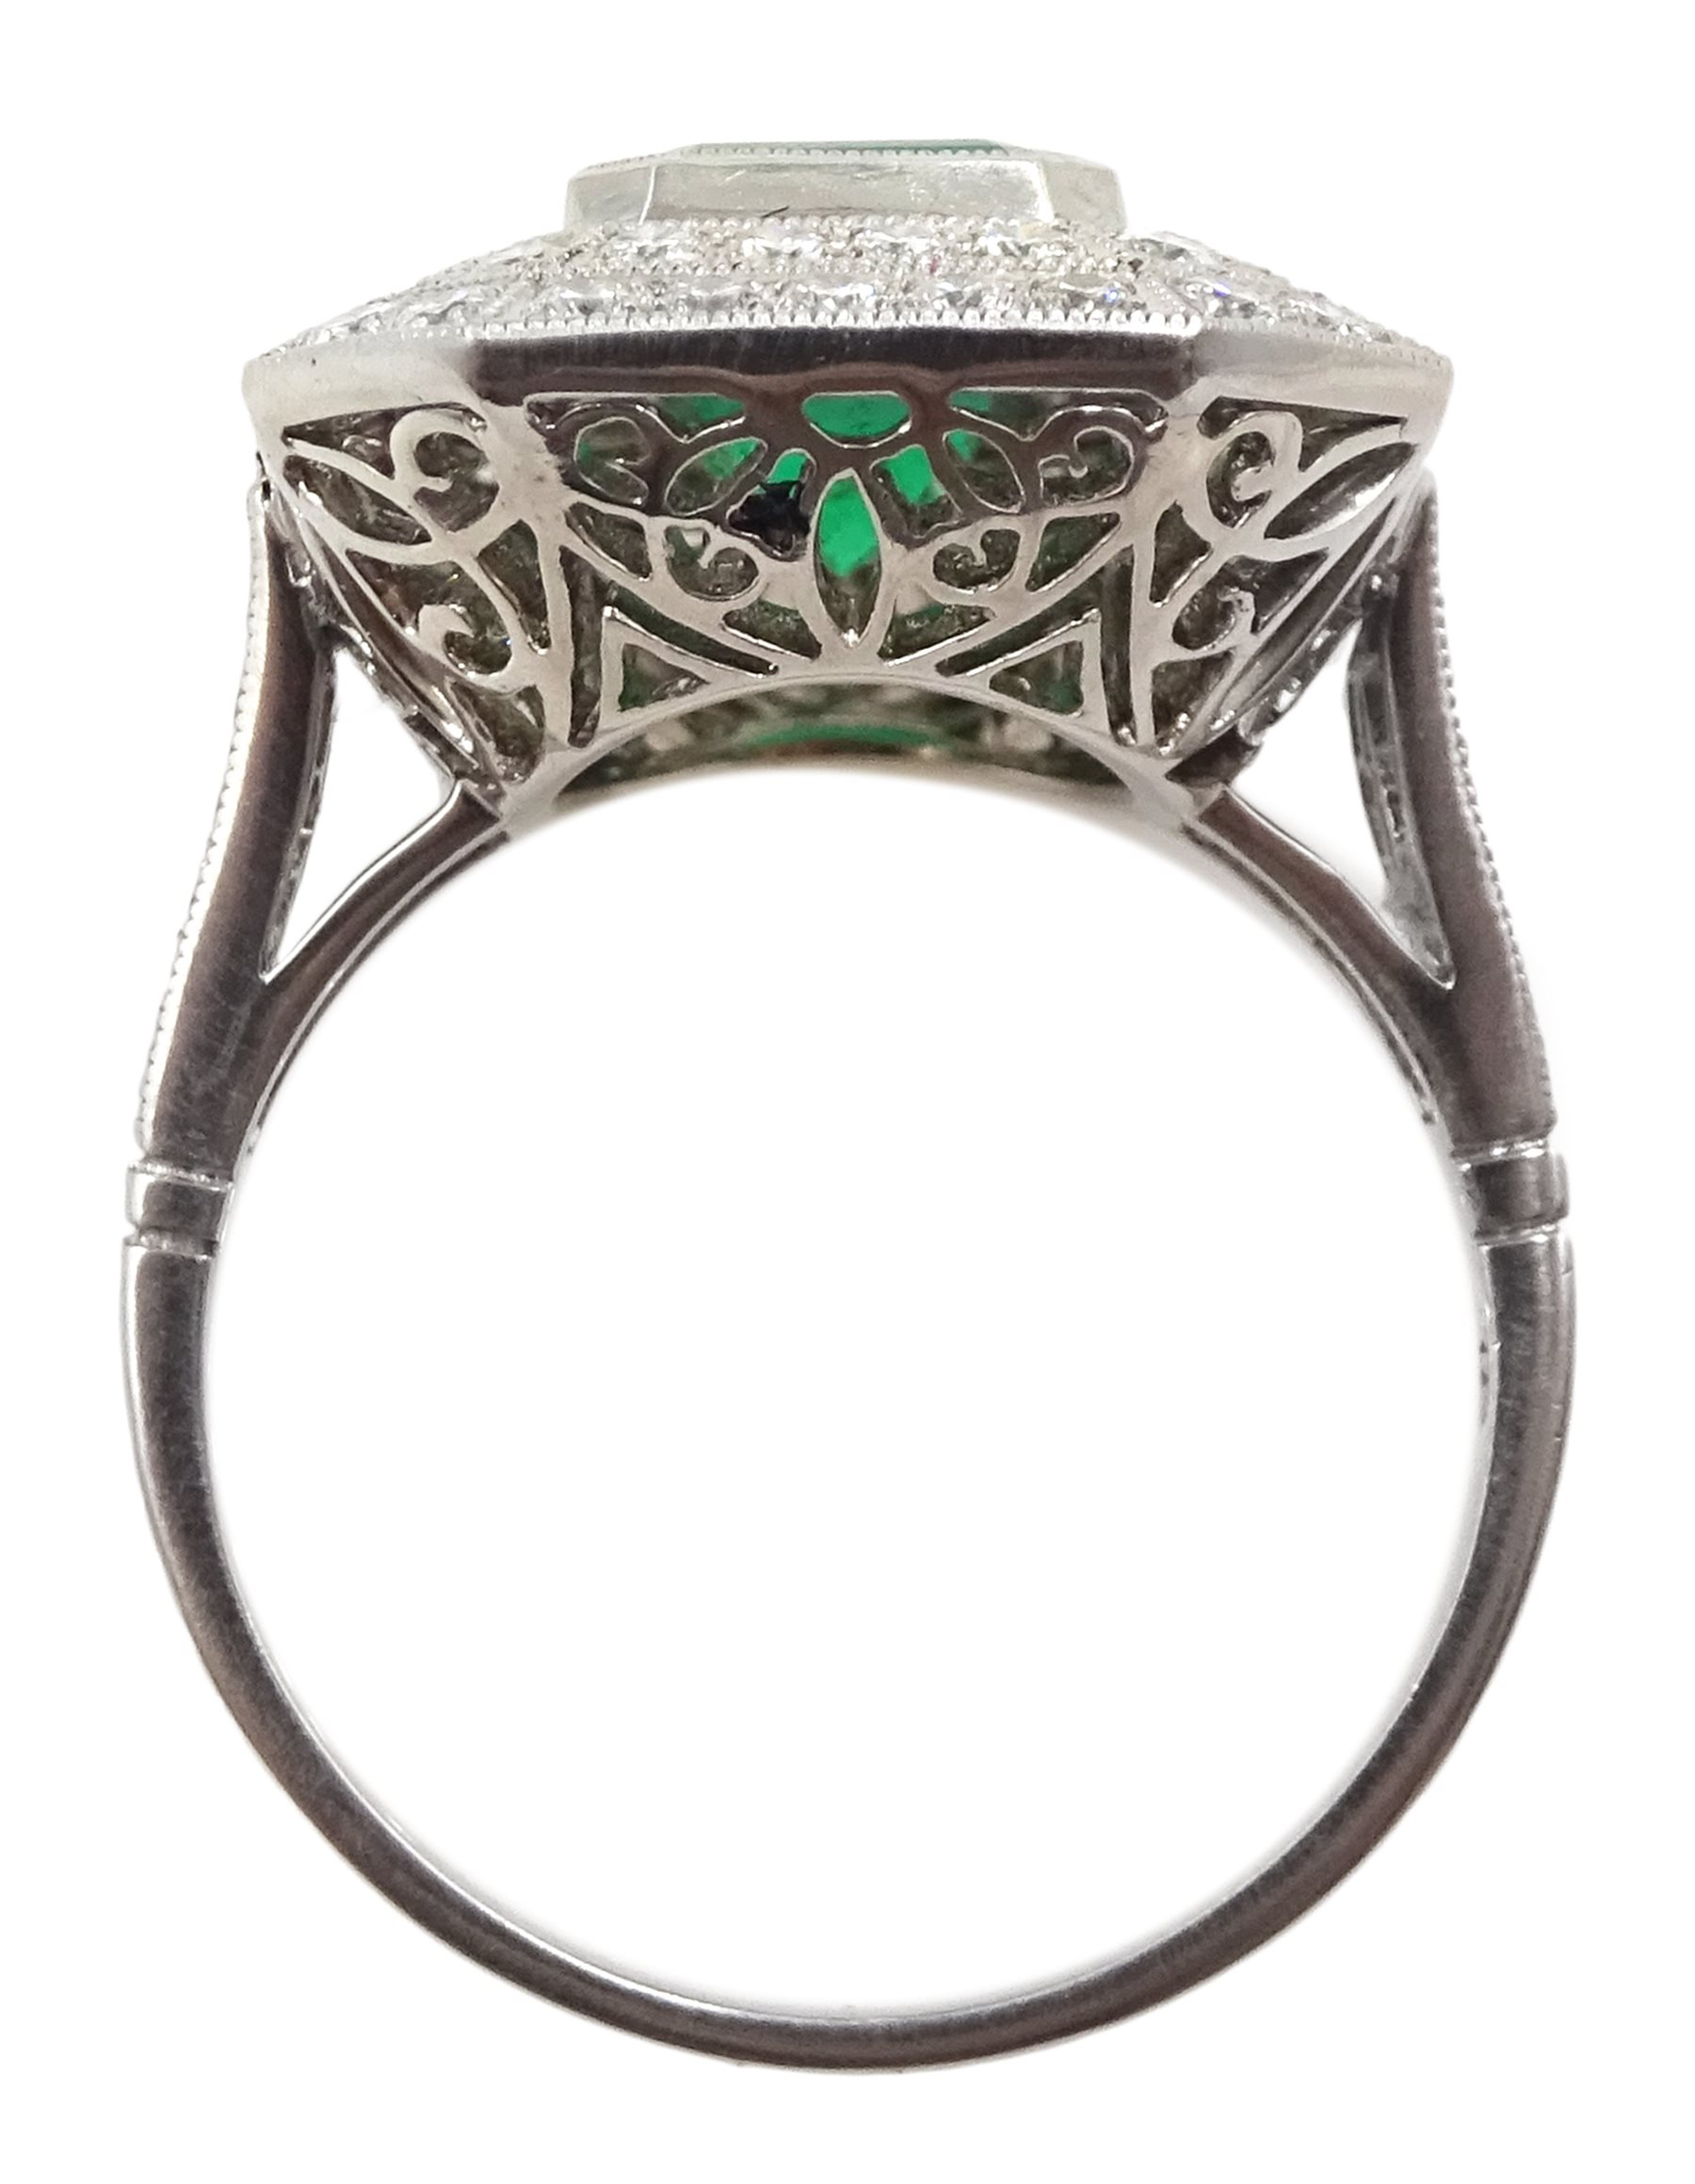 Platinum emerald and double row diamond ring - Image 5 of 5